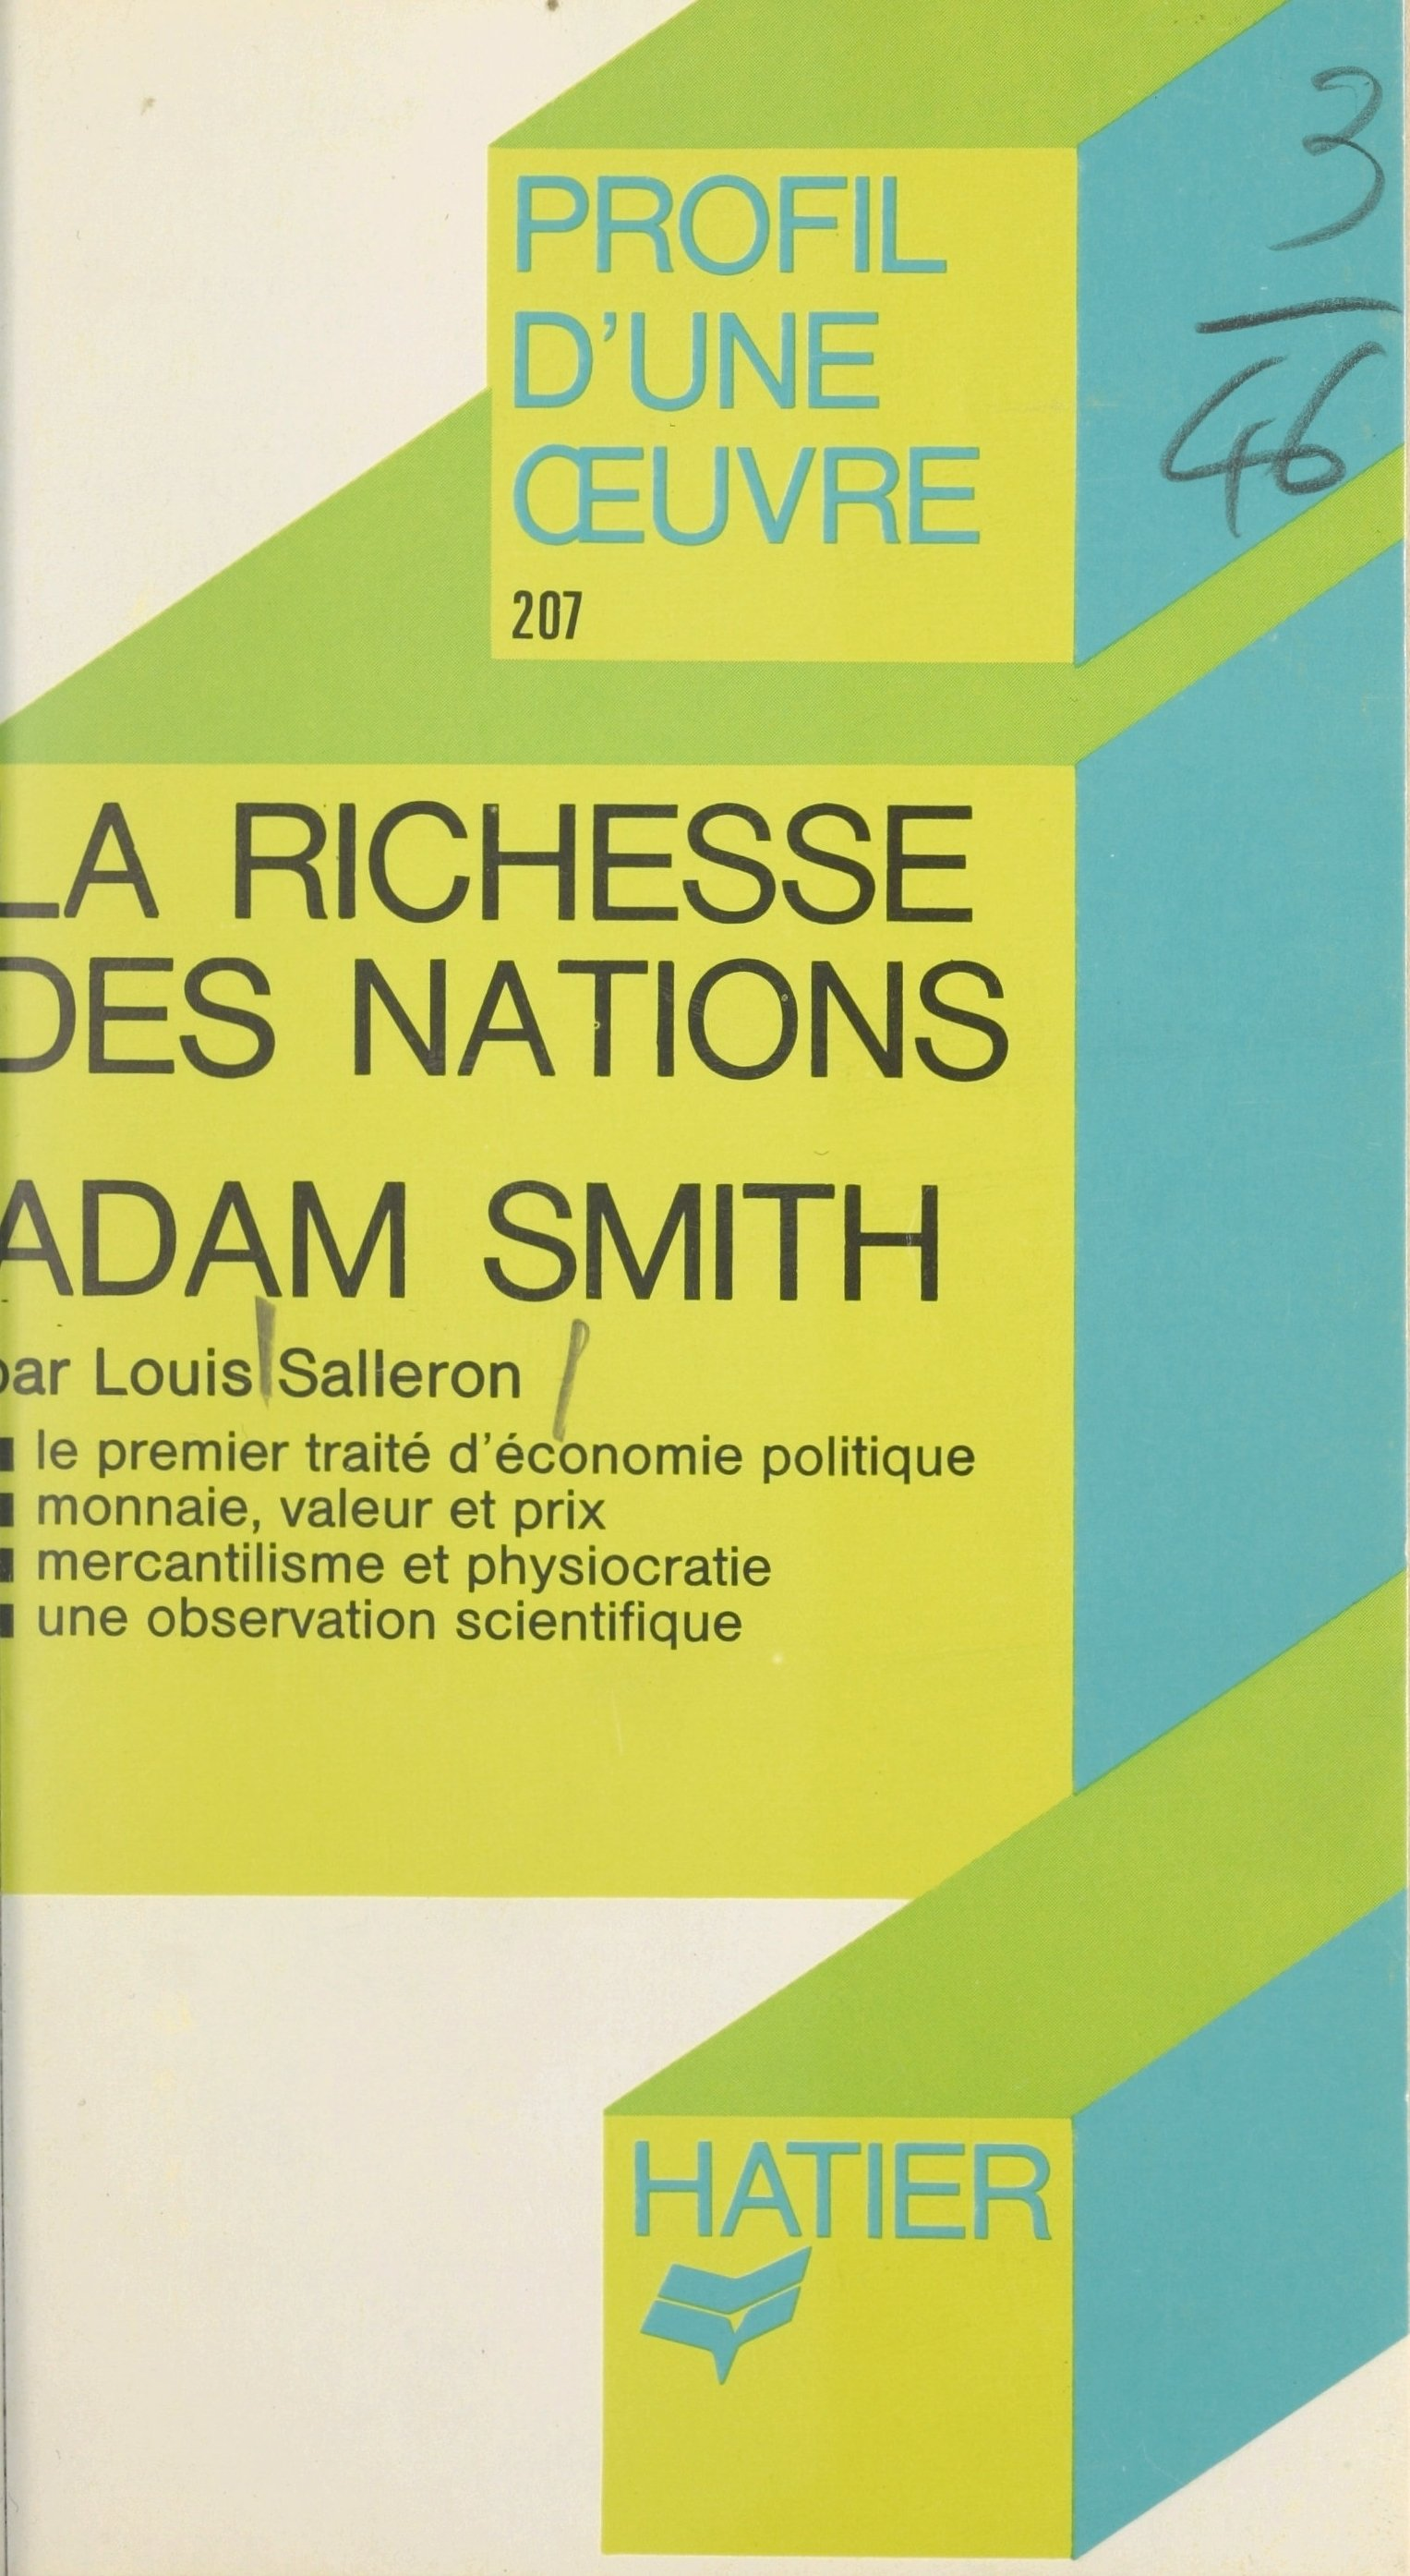 La richesse des nations, Ad...